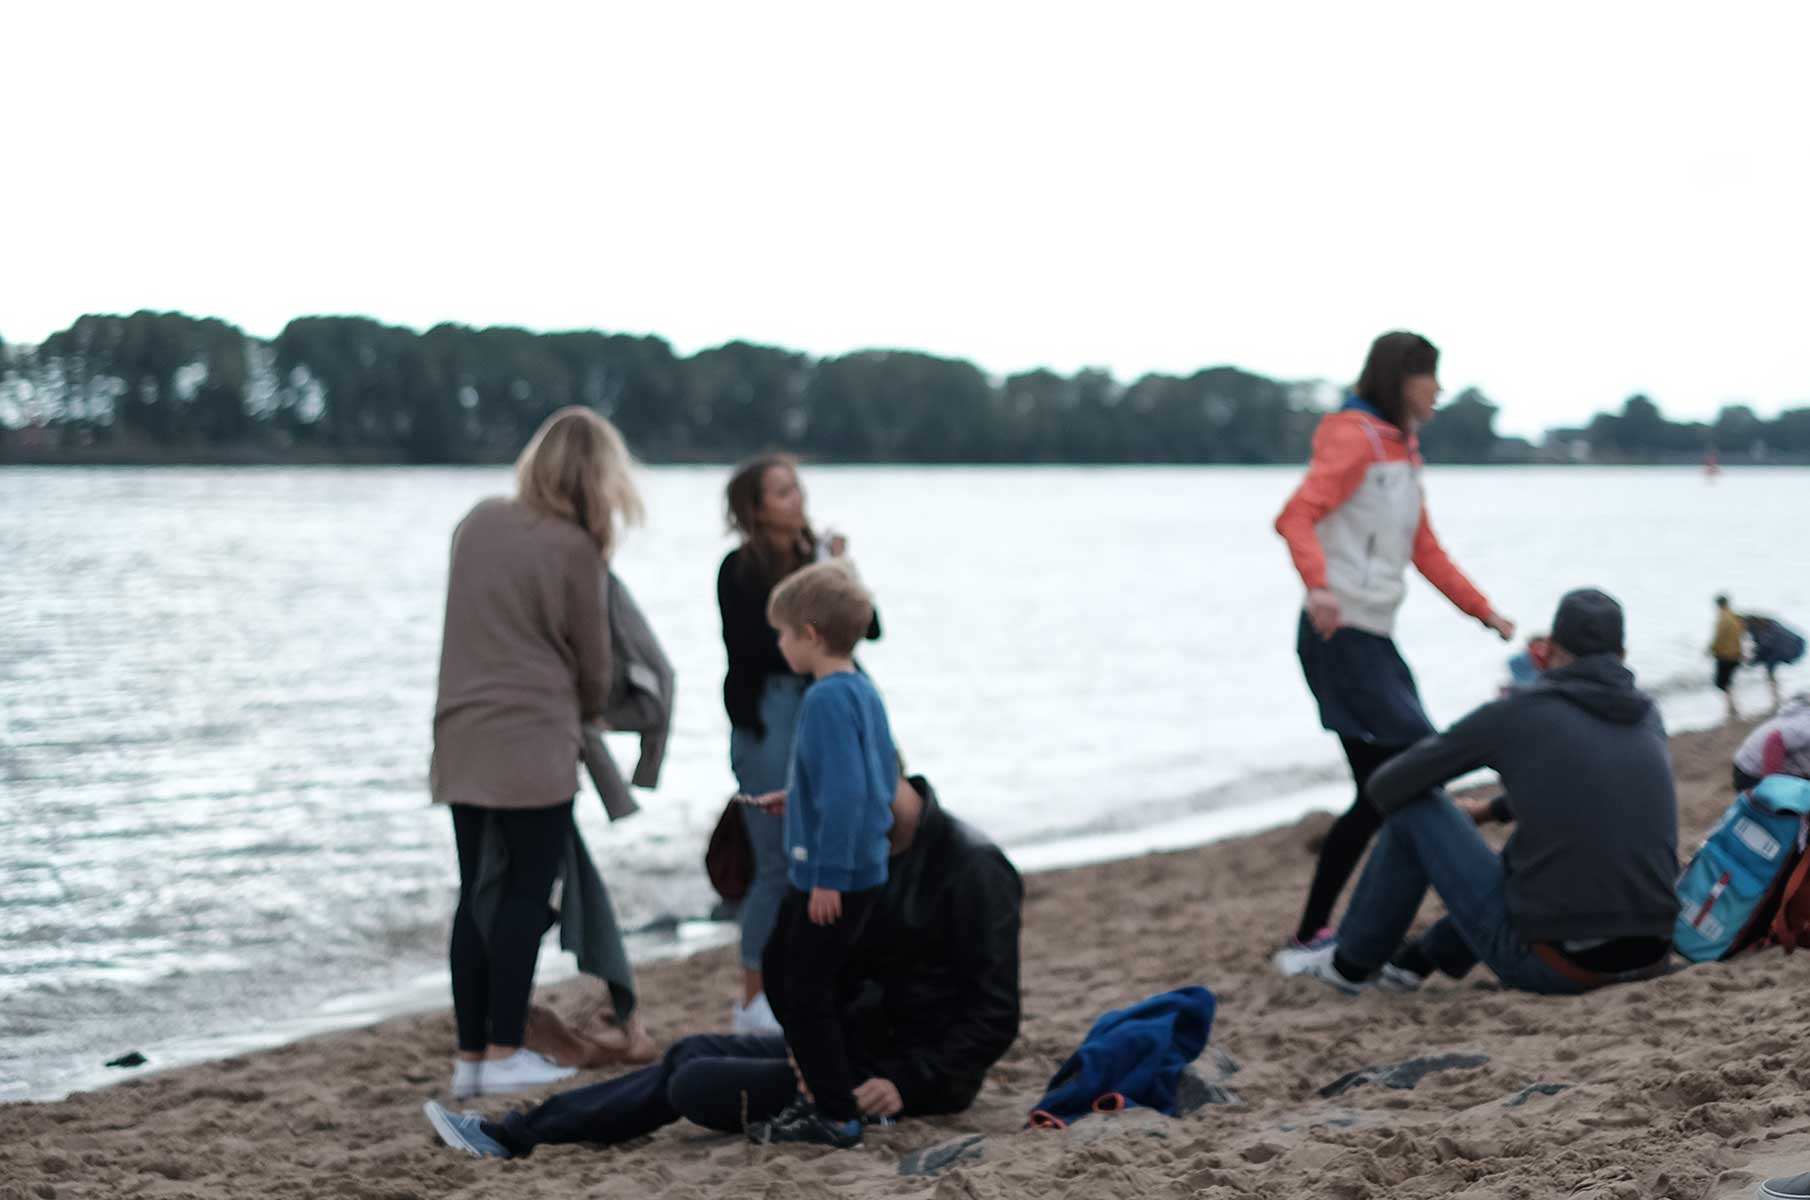 Am Strand in Oevelgönne in Hamburg